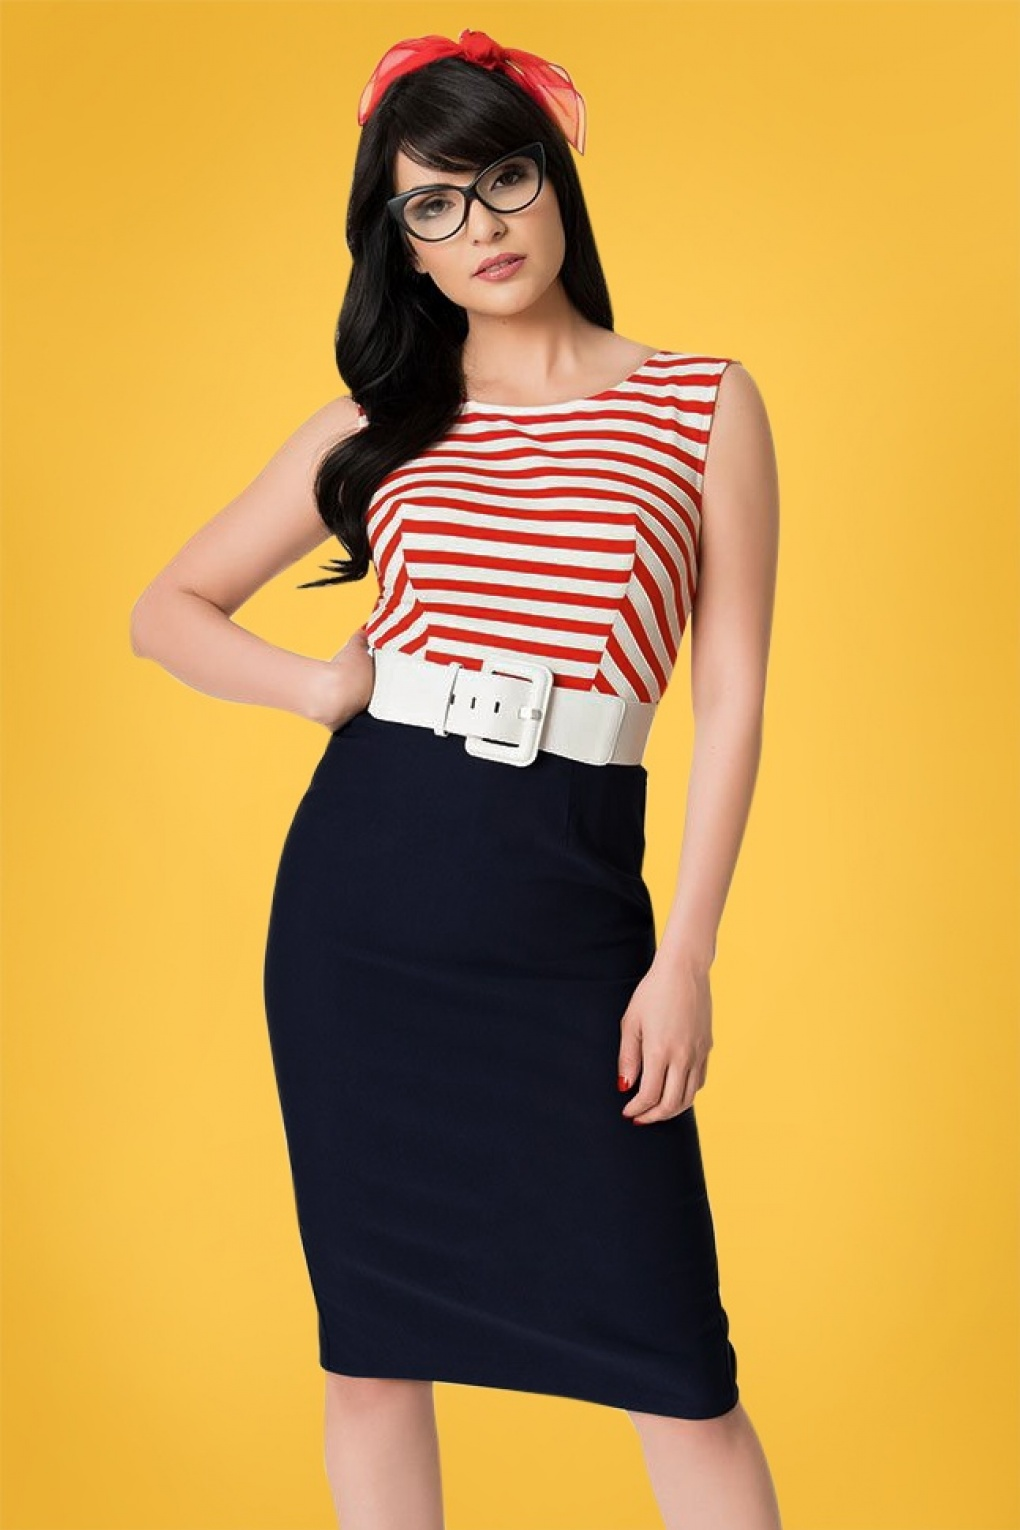 Sailor Dresses, Nautical Dress, Pin Up & WW2 Dresses 50s Barbie Cruise Stripes Nautical Pencil Dress in Navy and Red £123.84 AT vintagedancer.com